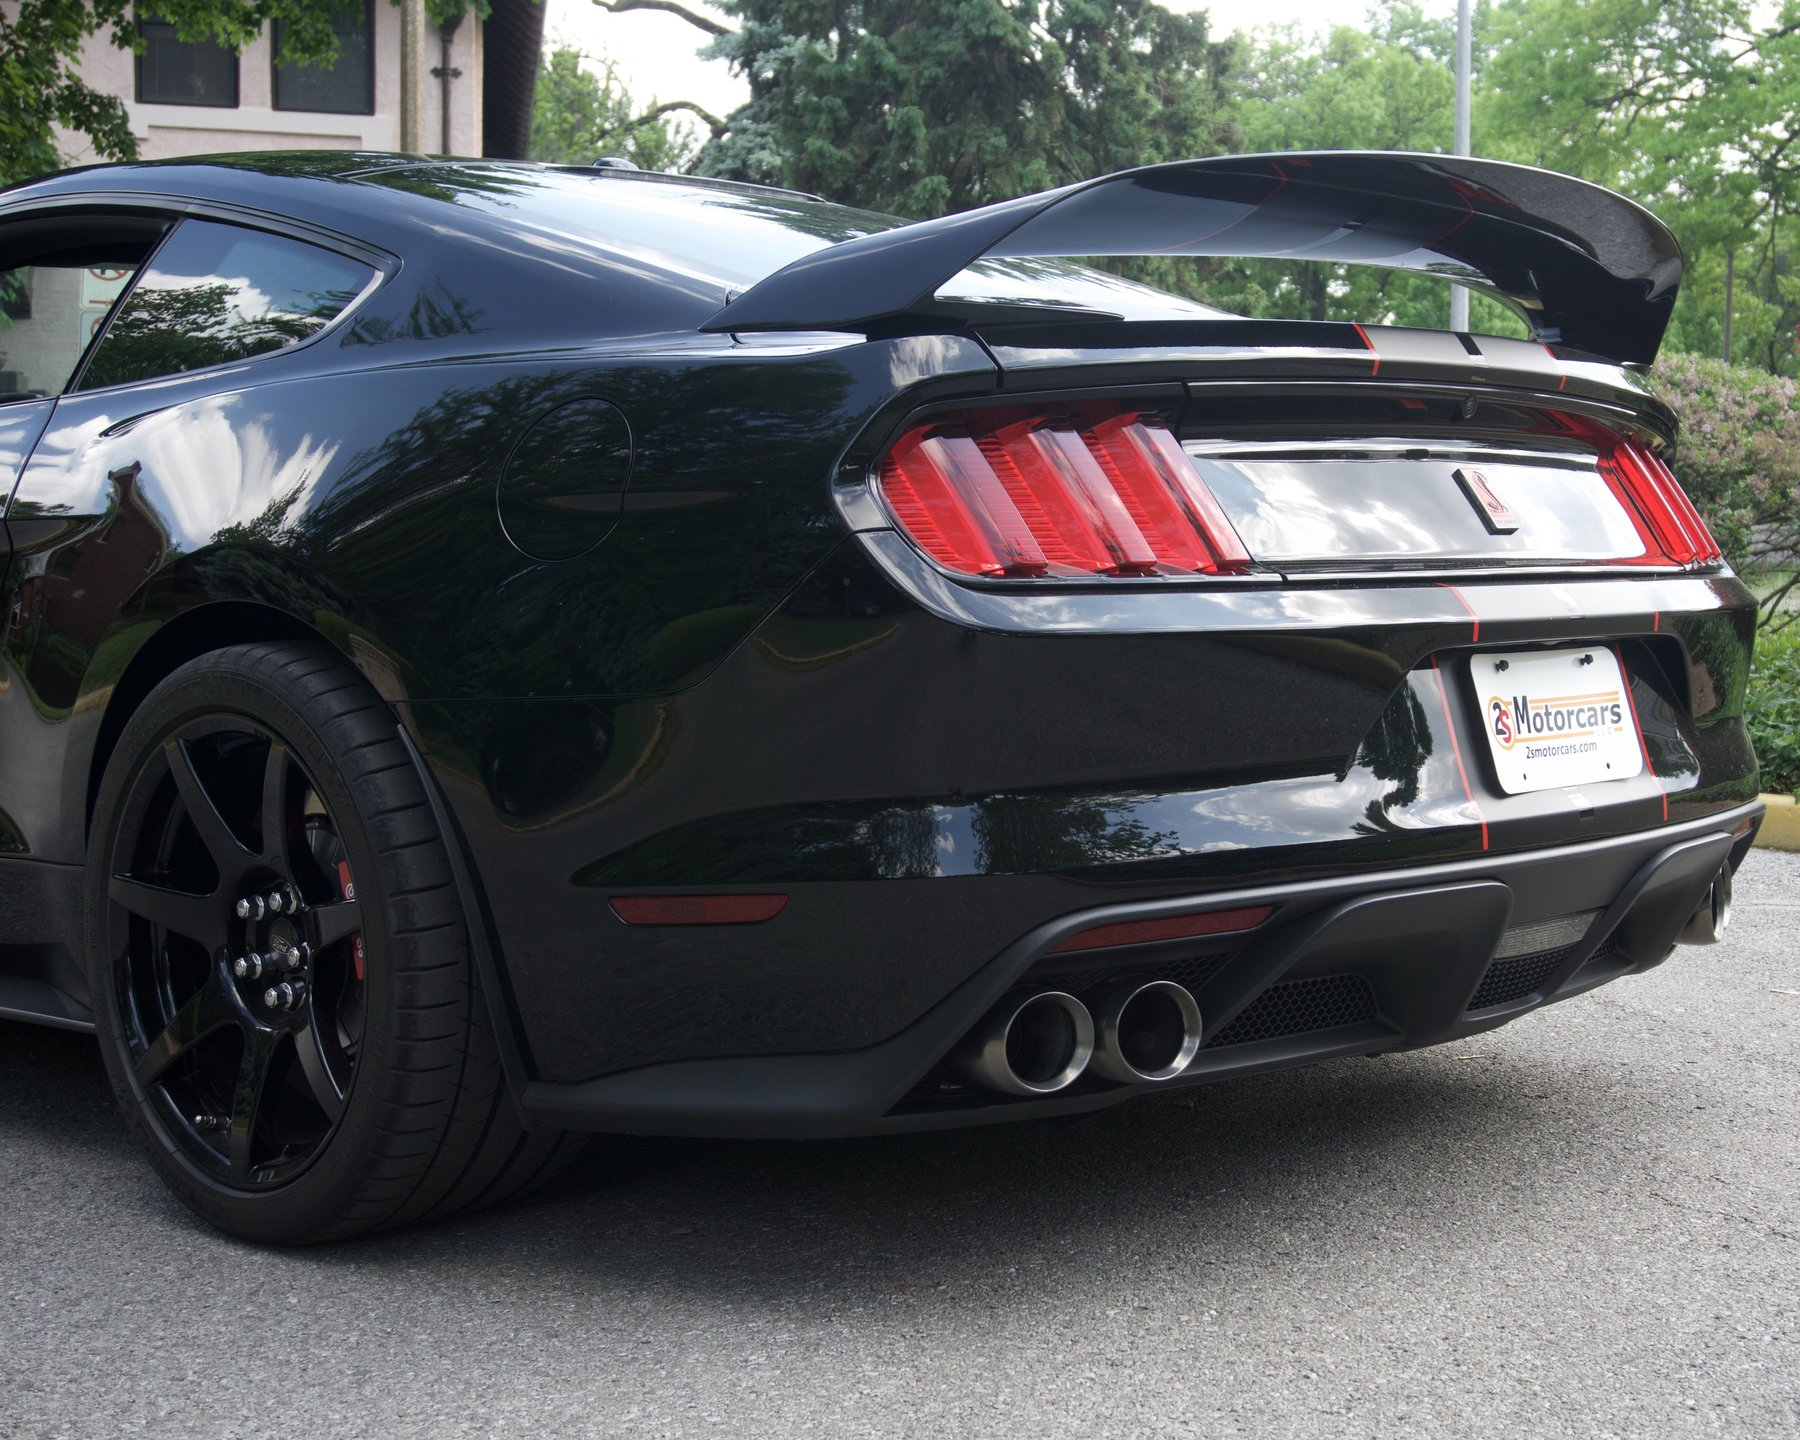 Carfax Report Cost >> 2017 Shelby GT350R | 2S Motorcars | Specializing in High